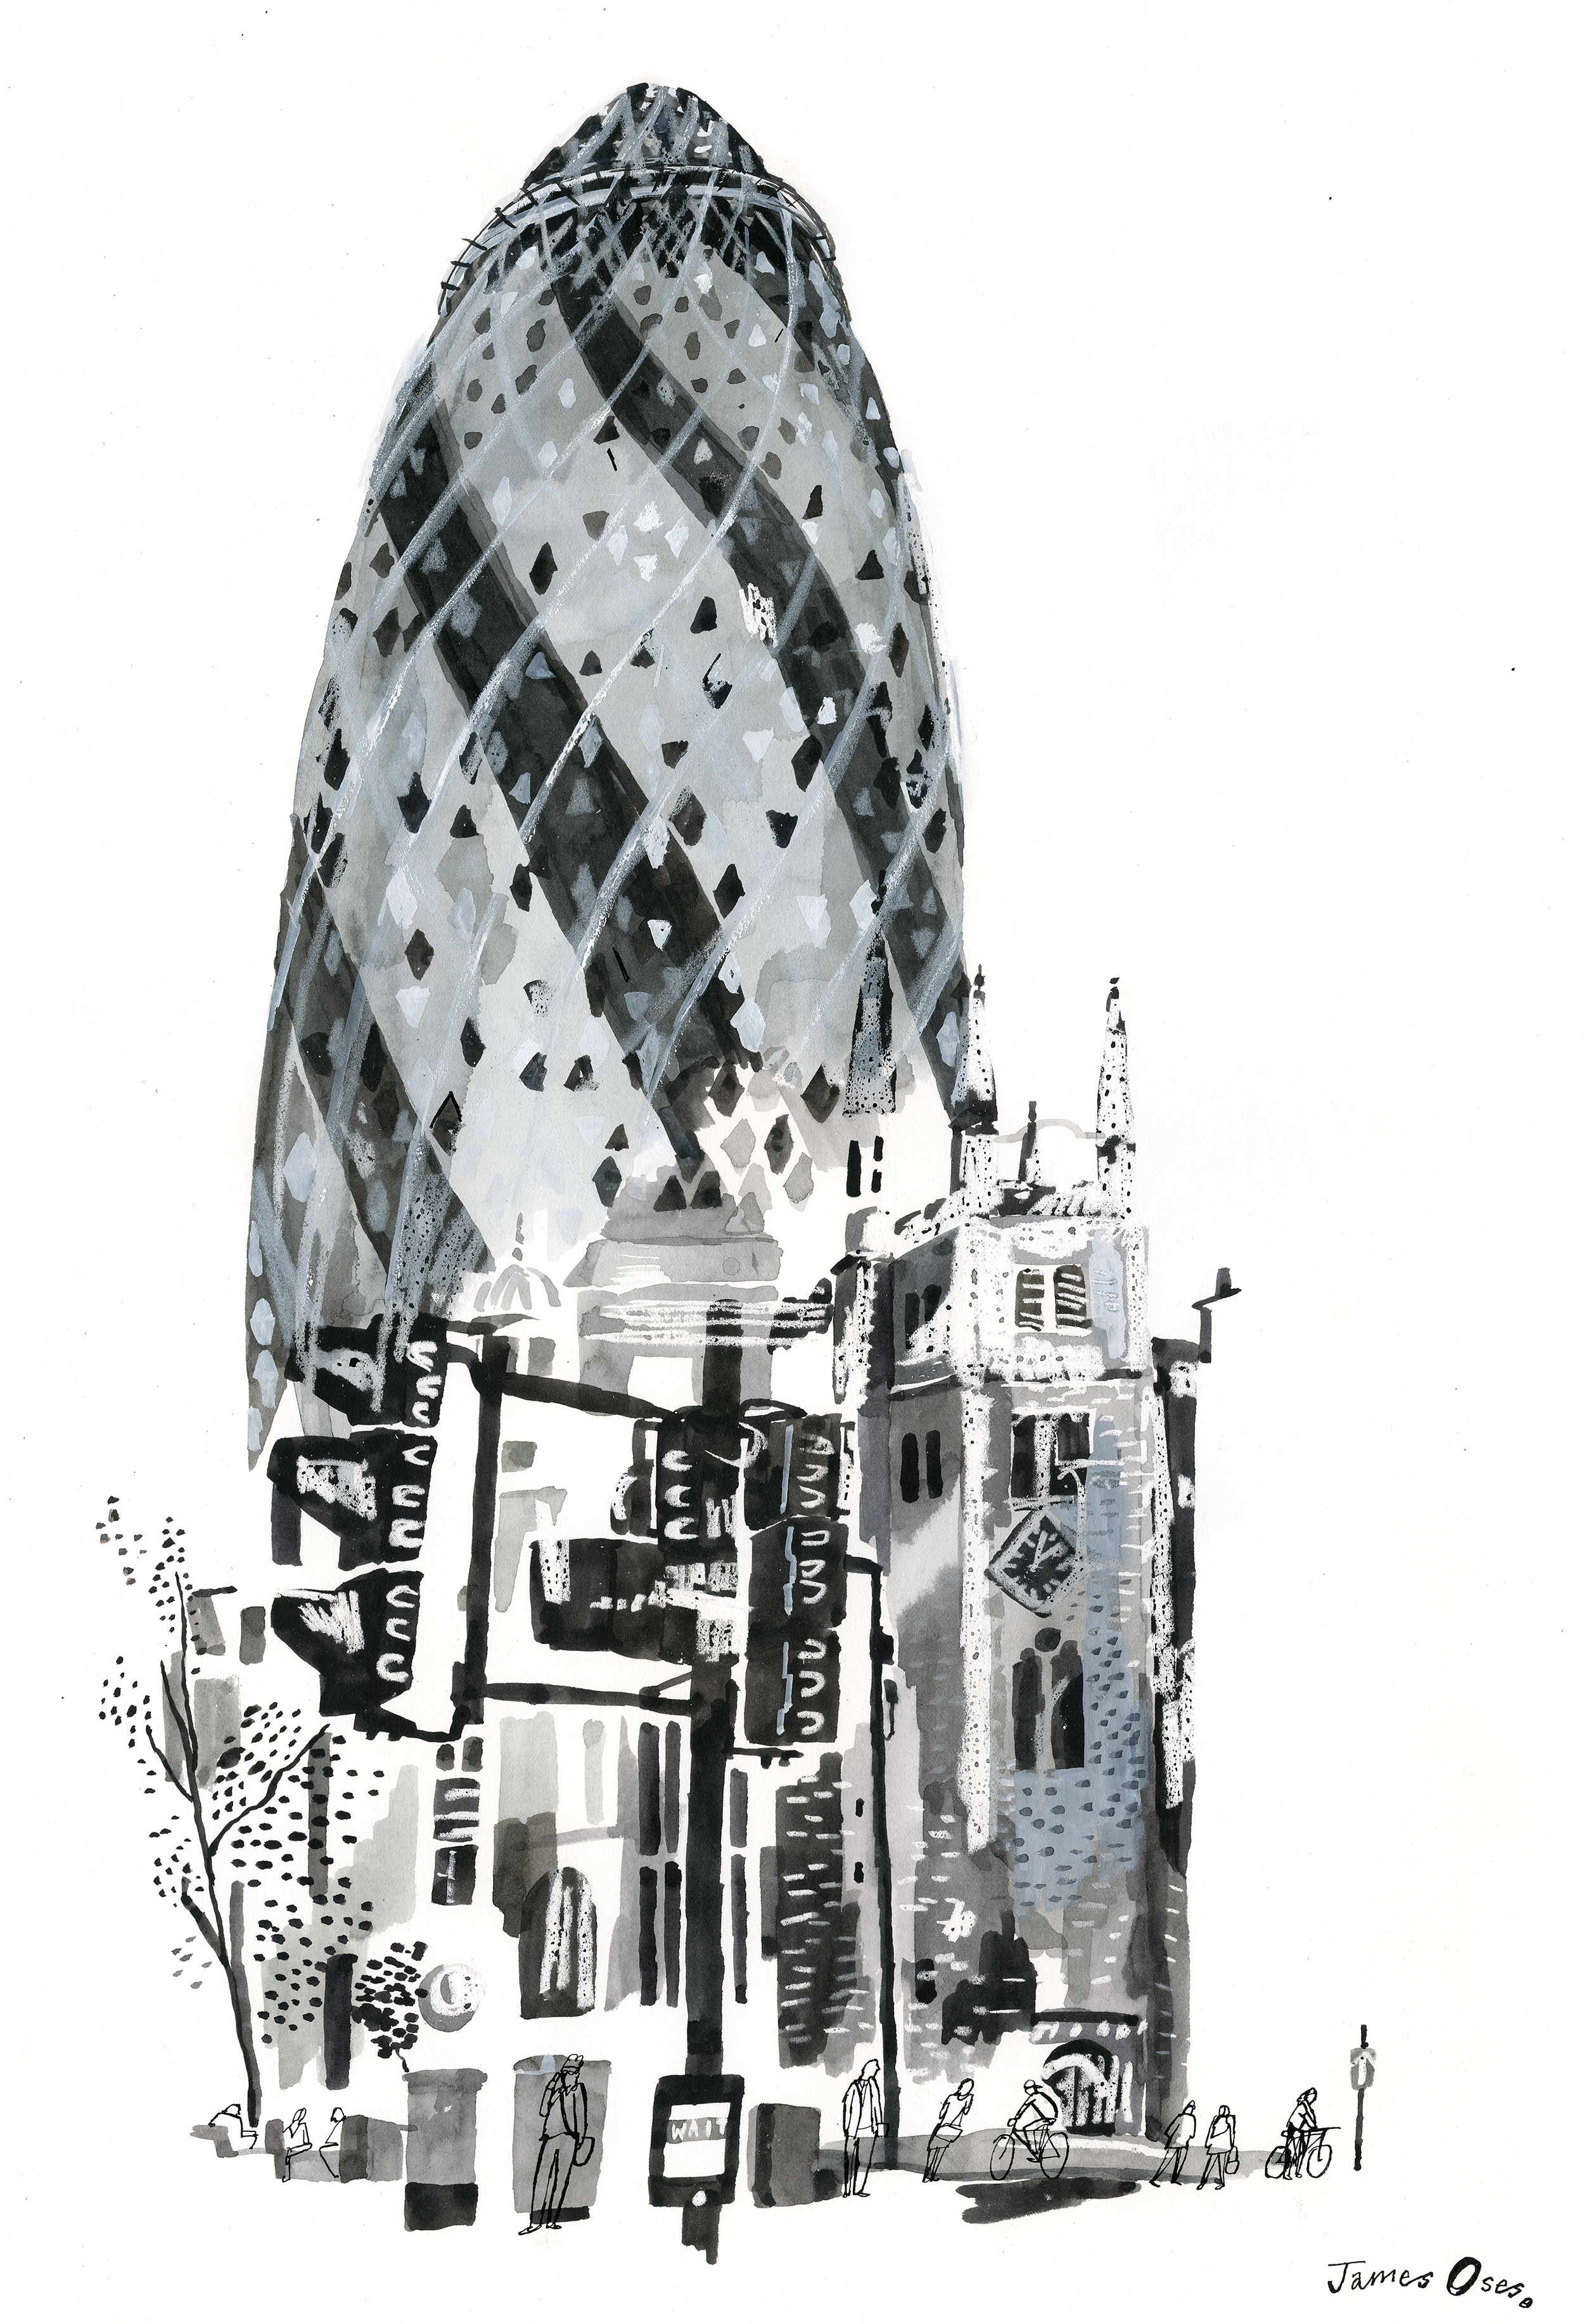 The Gherkin by James Oses